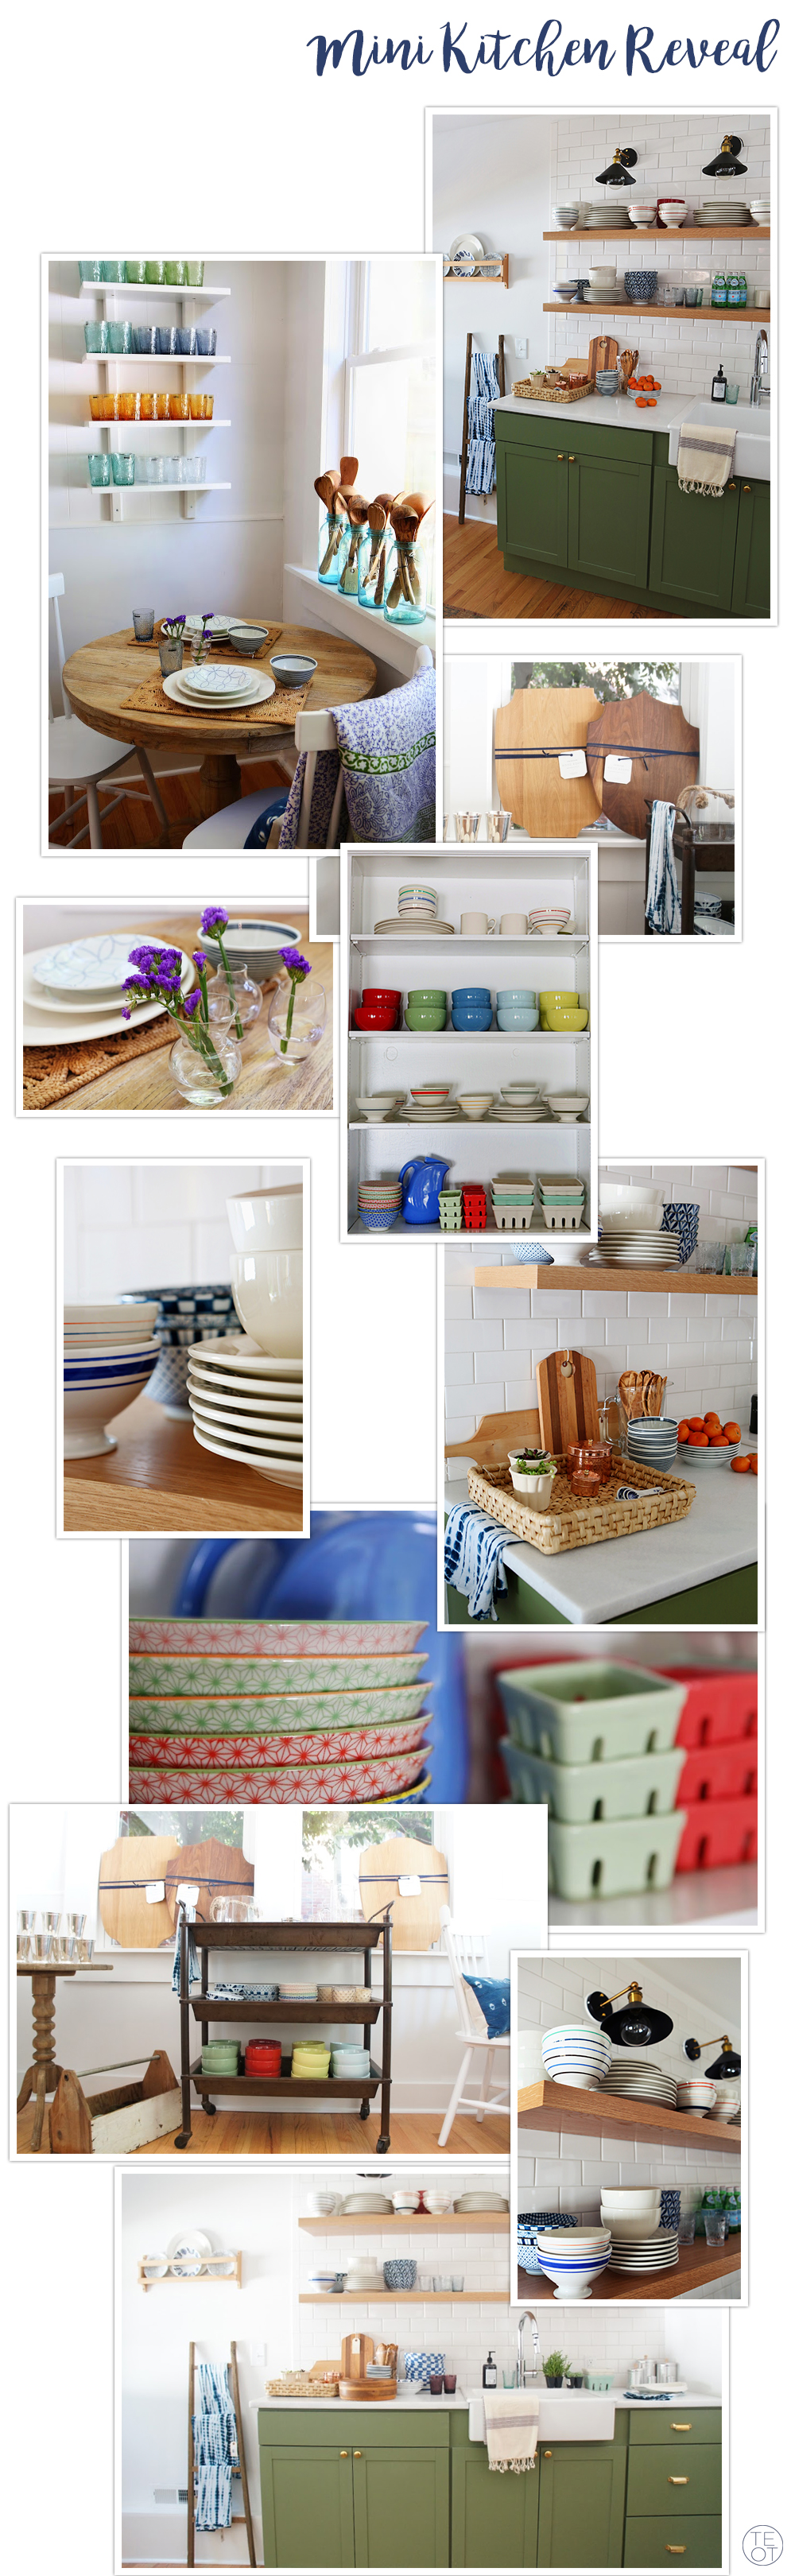 reveal-the-mini-kitchen-renovation-the-estate-of-things-shop-teot